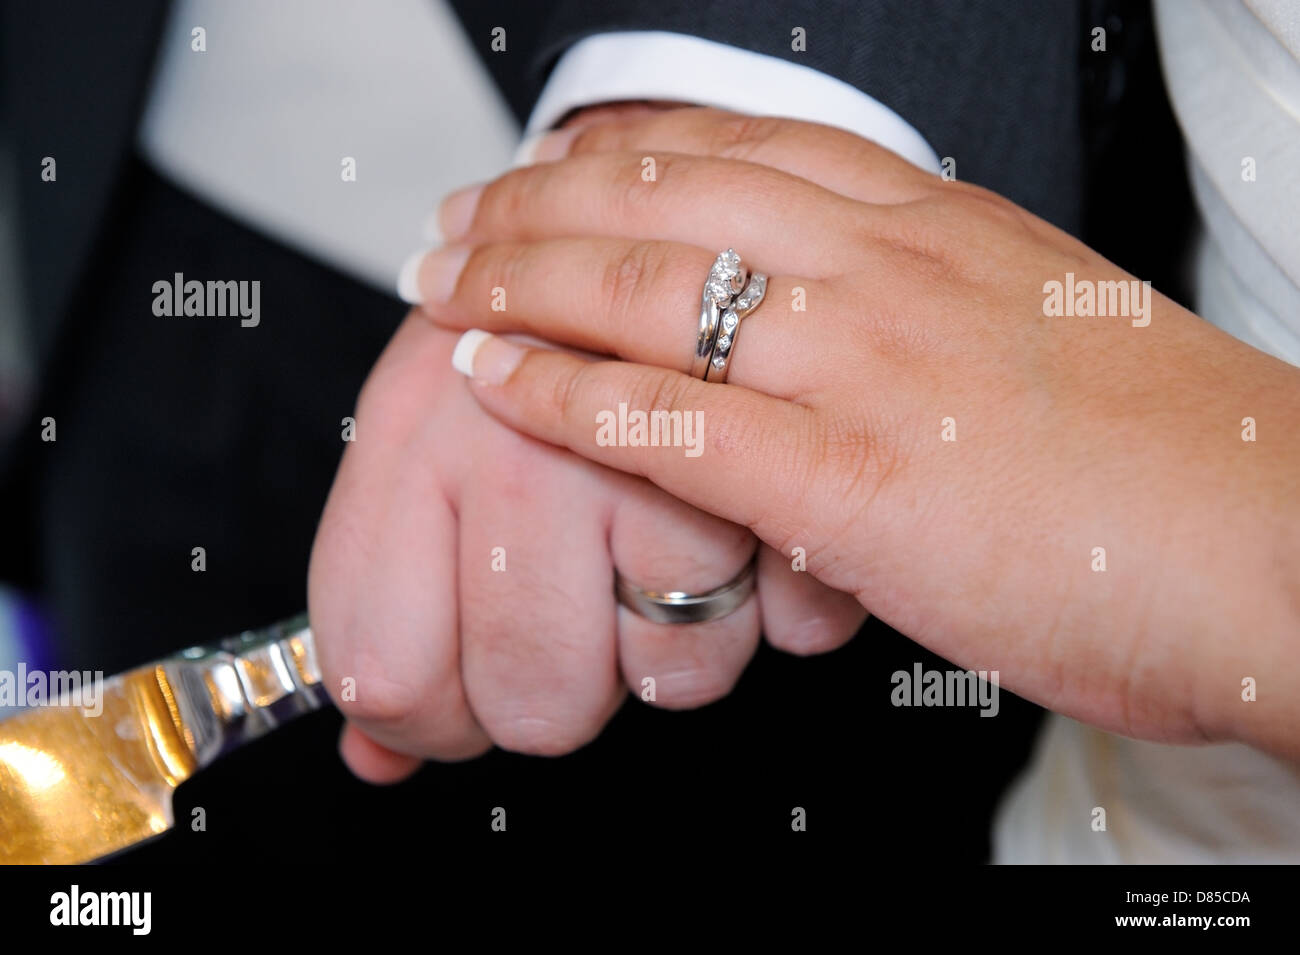 Wedding Rings Hands Stock Photos & Wedding Rings Hands Stock Images ...